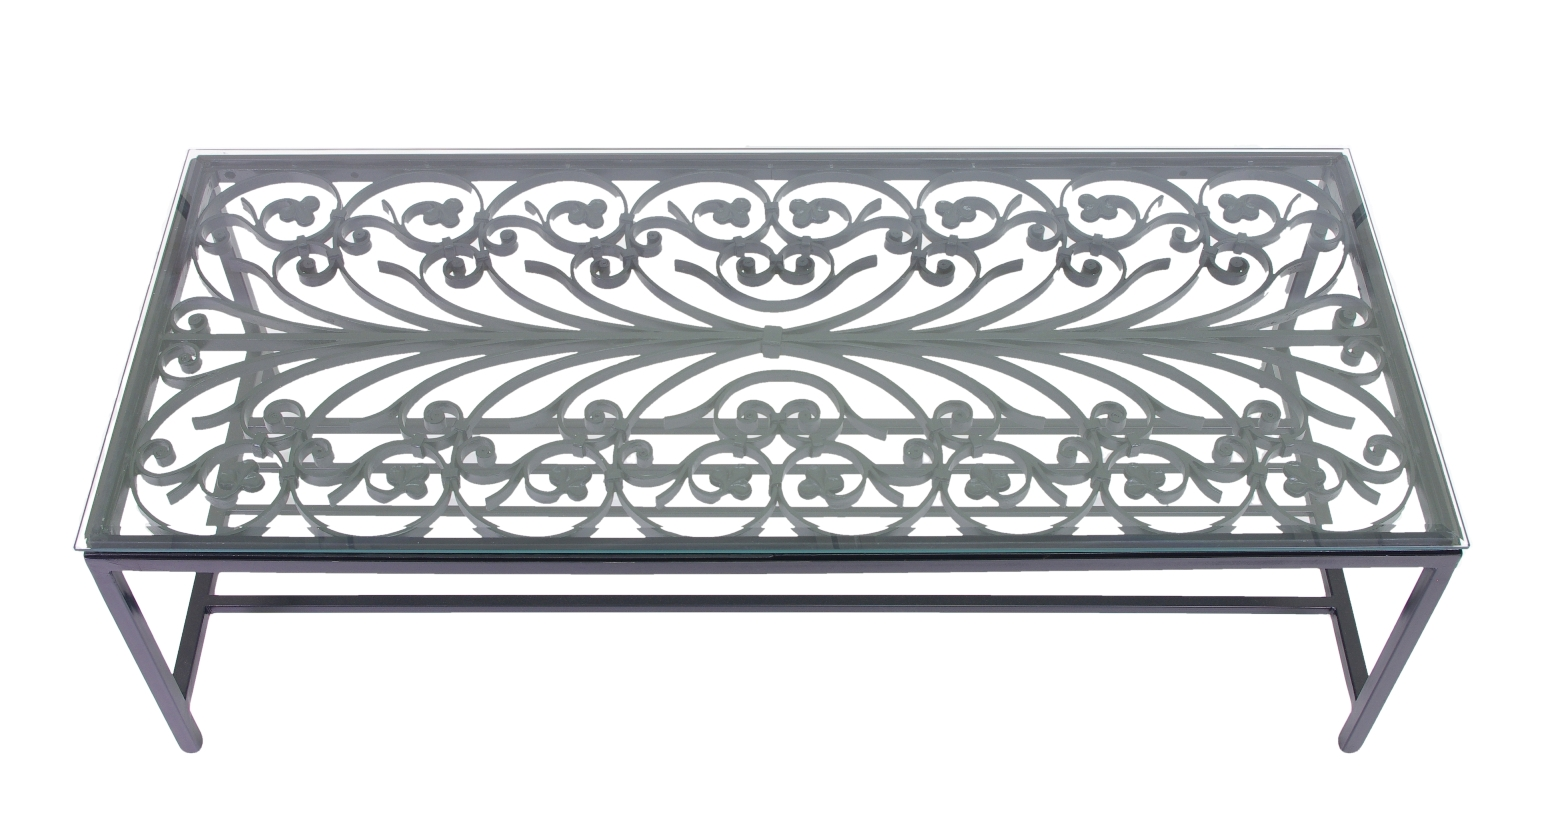 French Wrought Iron Window Guard Mounted as a Coffee Table, Mid 19th c.